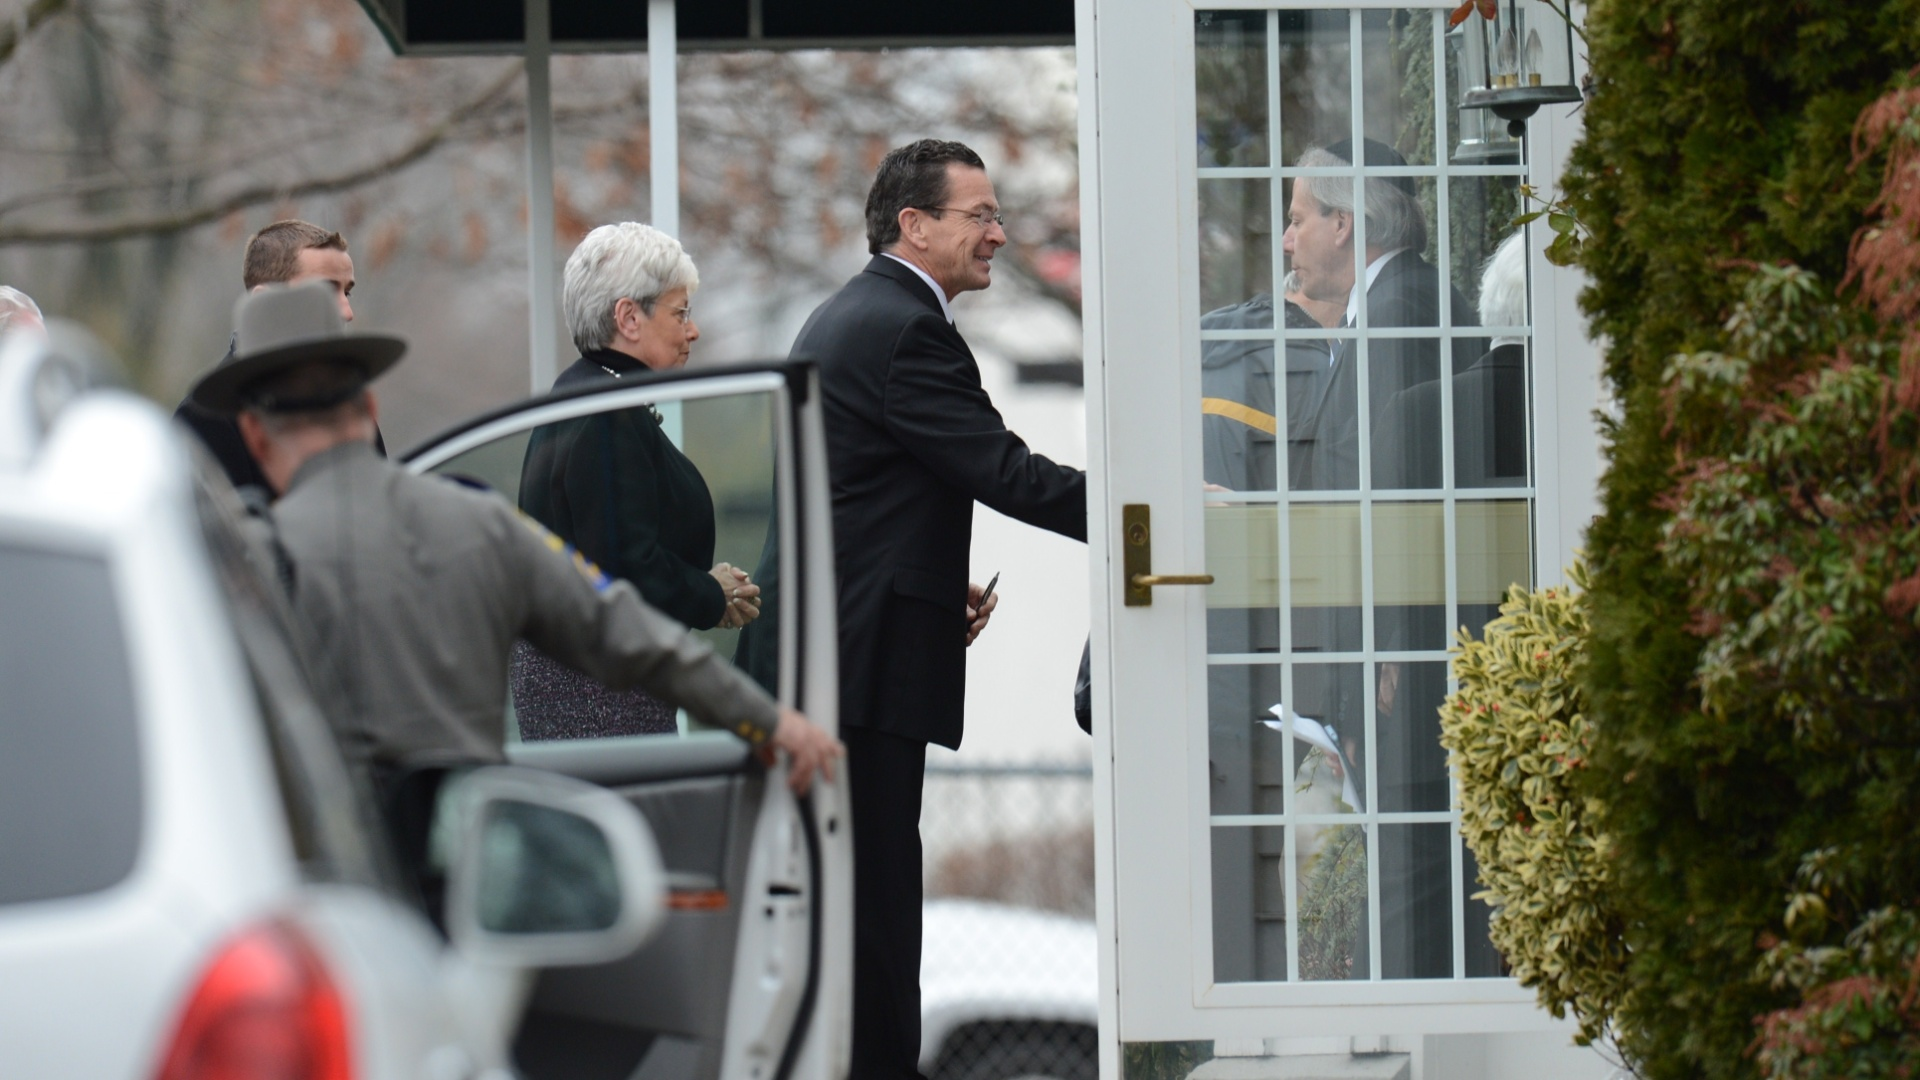 17.dez.2012 - O governador de Connecticut Dannel Malloy chega ao funeral de Noah Pozner, 6, assassinado no massacre da escola Sandy Hook